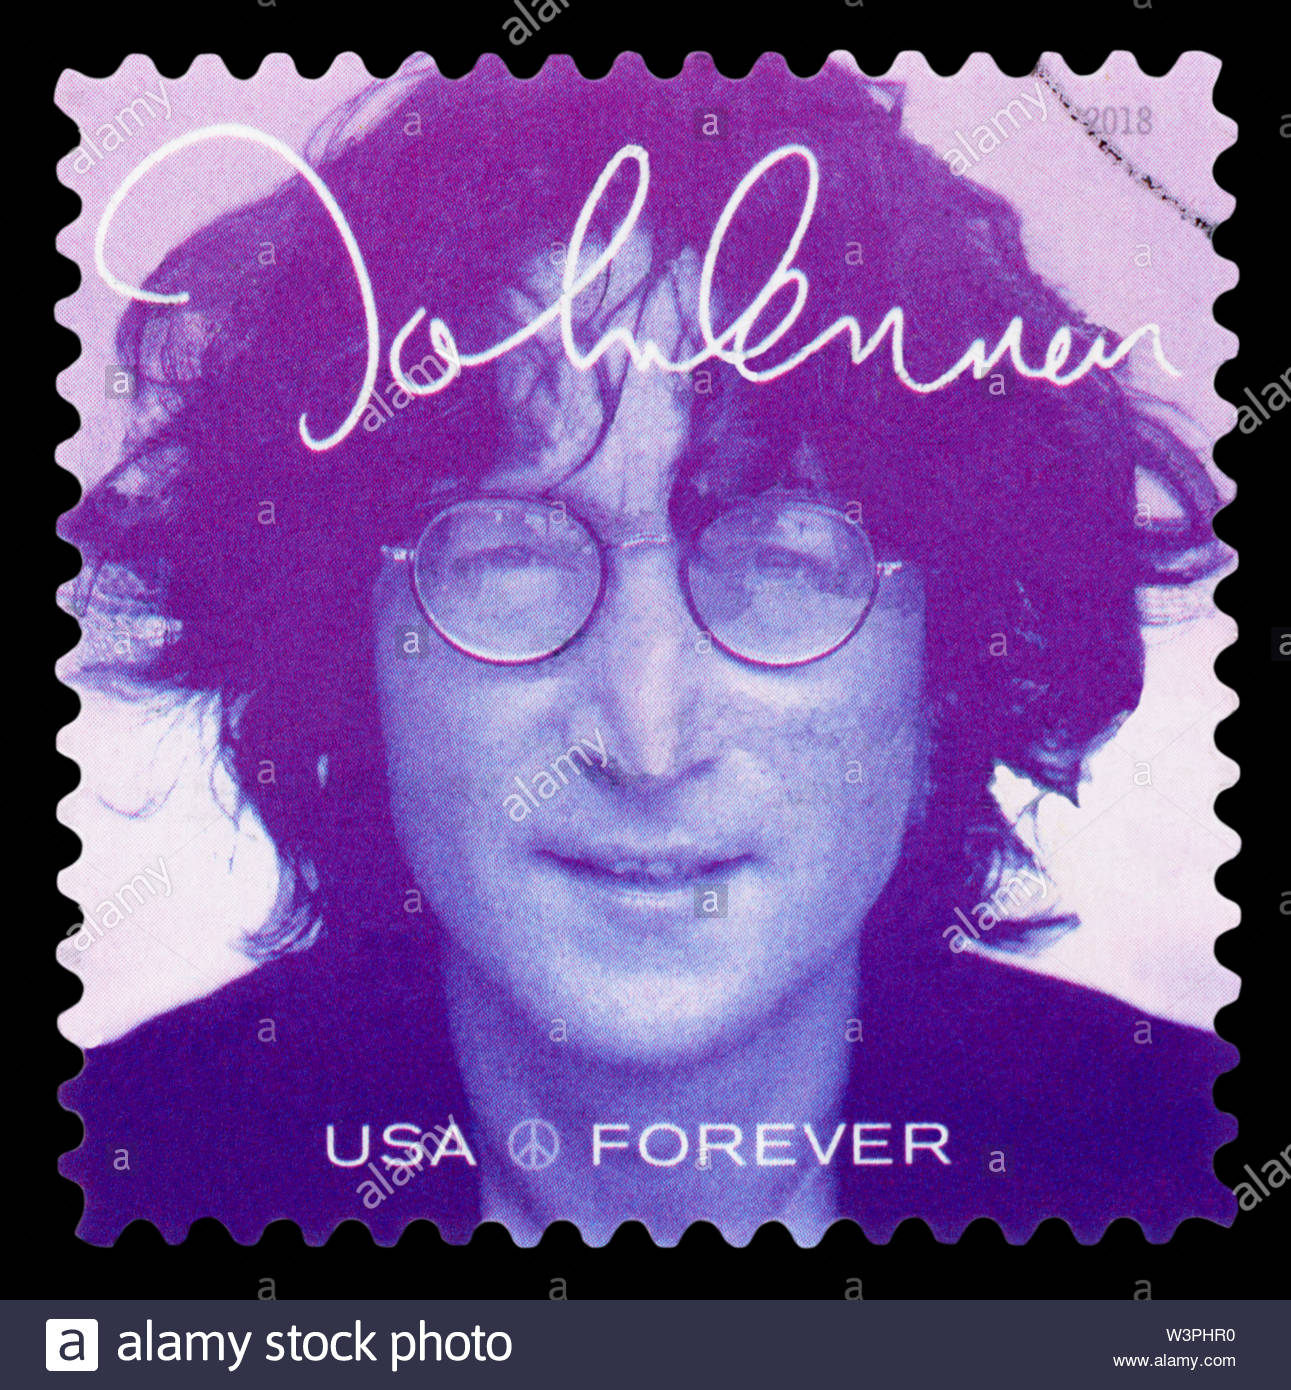 UNITED STATES OF AMERICA - CIRCA 2018: A stamp printed in USA shows John Winston Ono Lennon (1940-1980), series Music Icons, Forever, 2018. - Stock Image